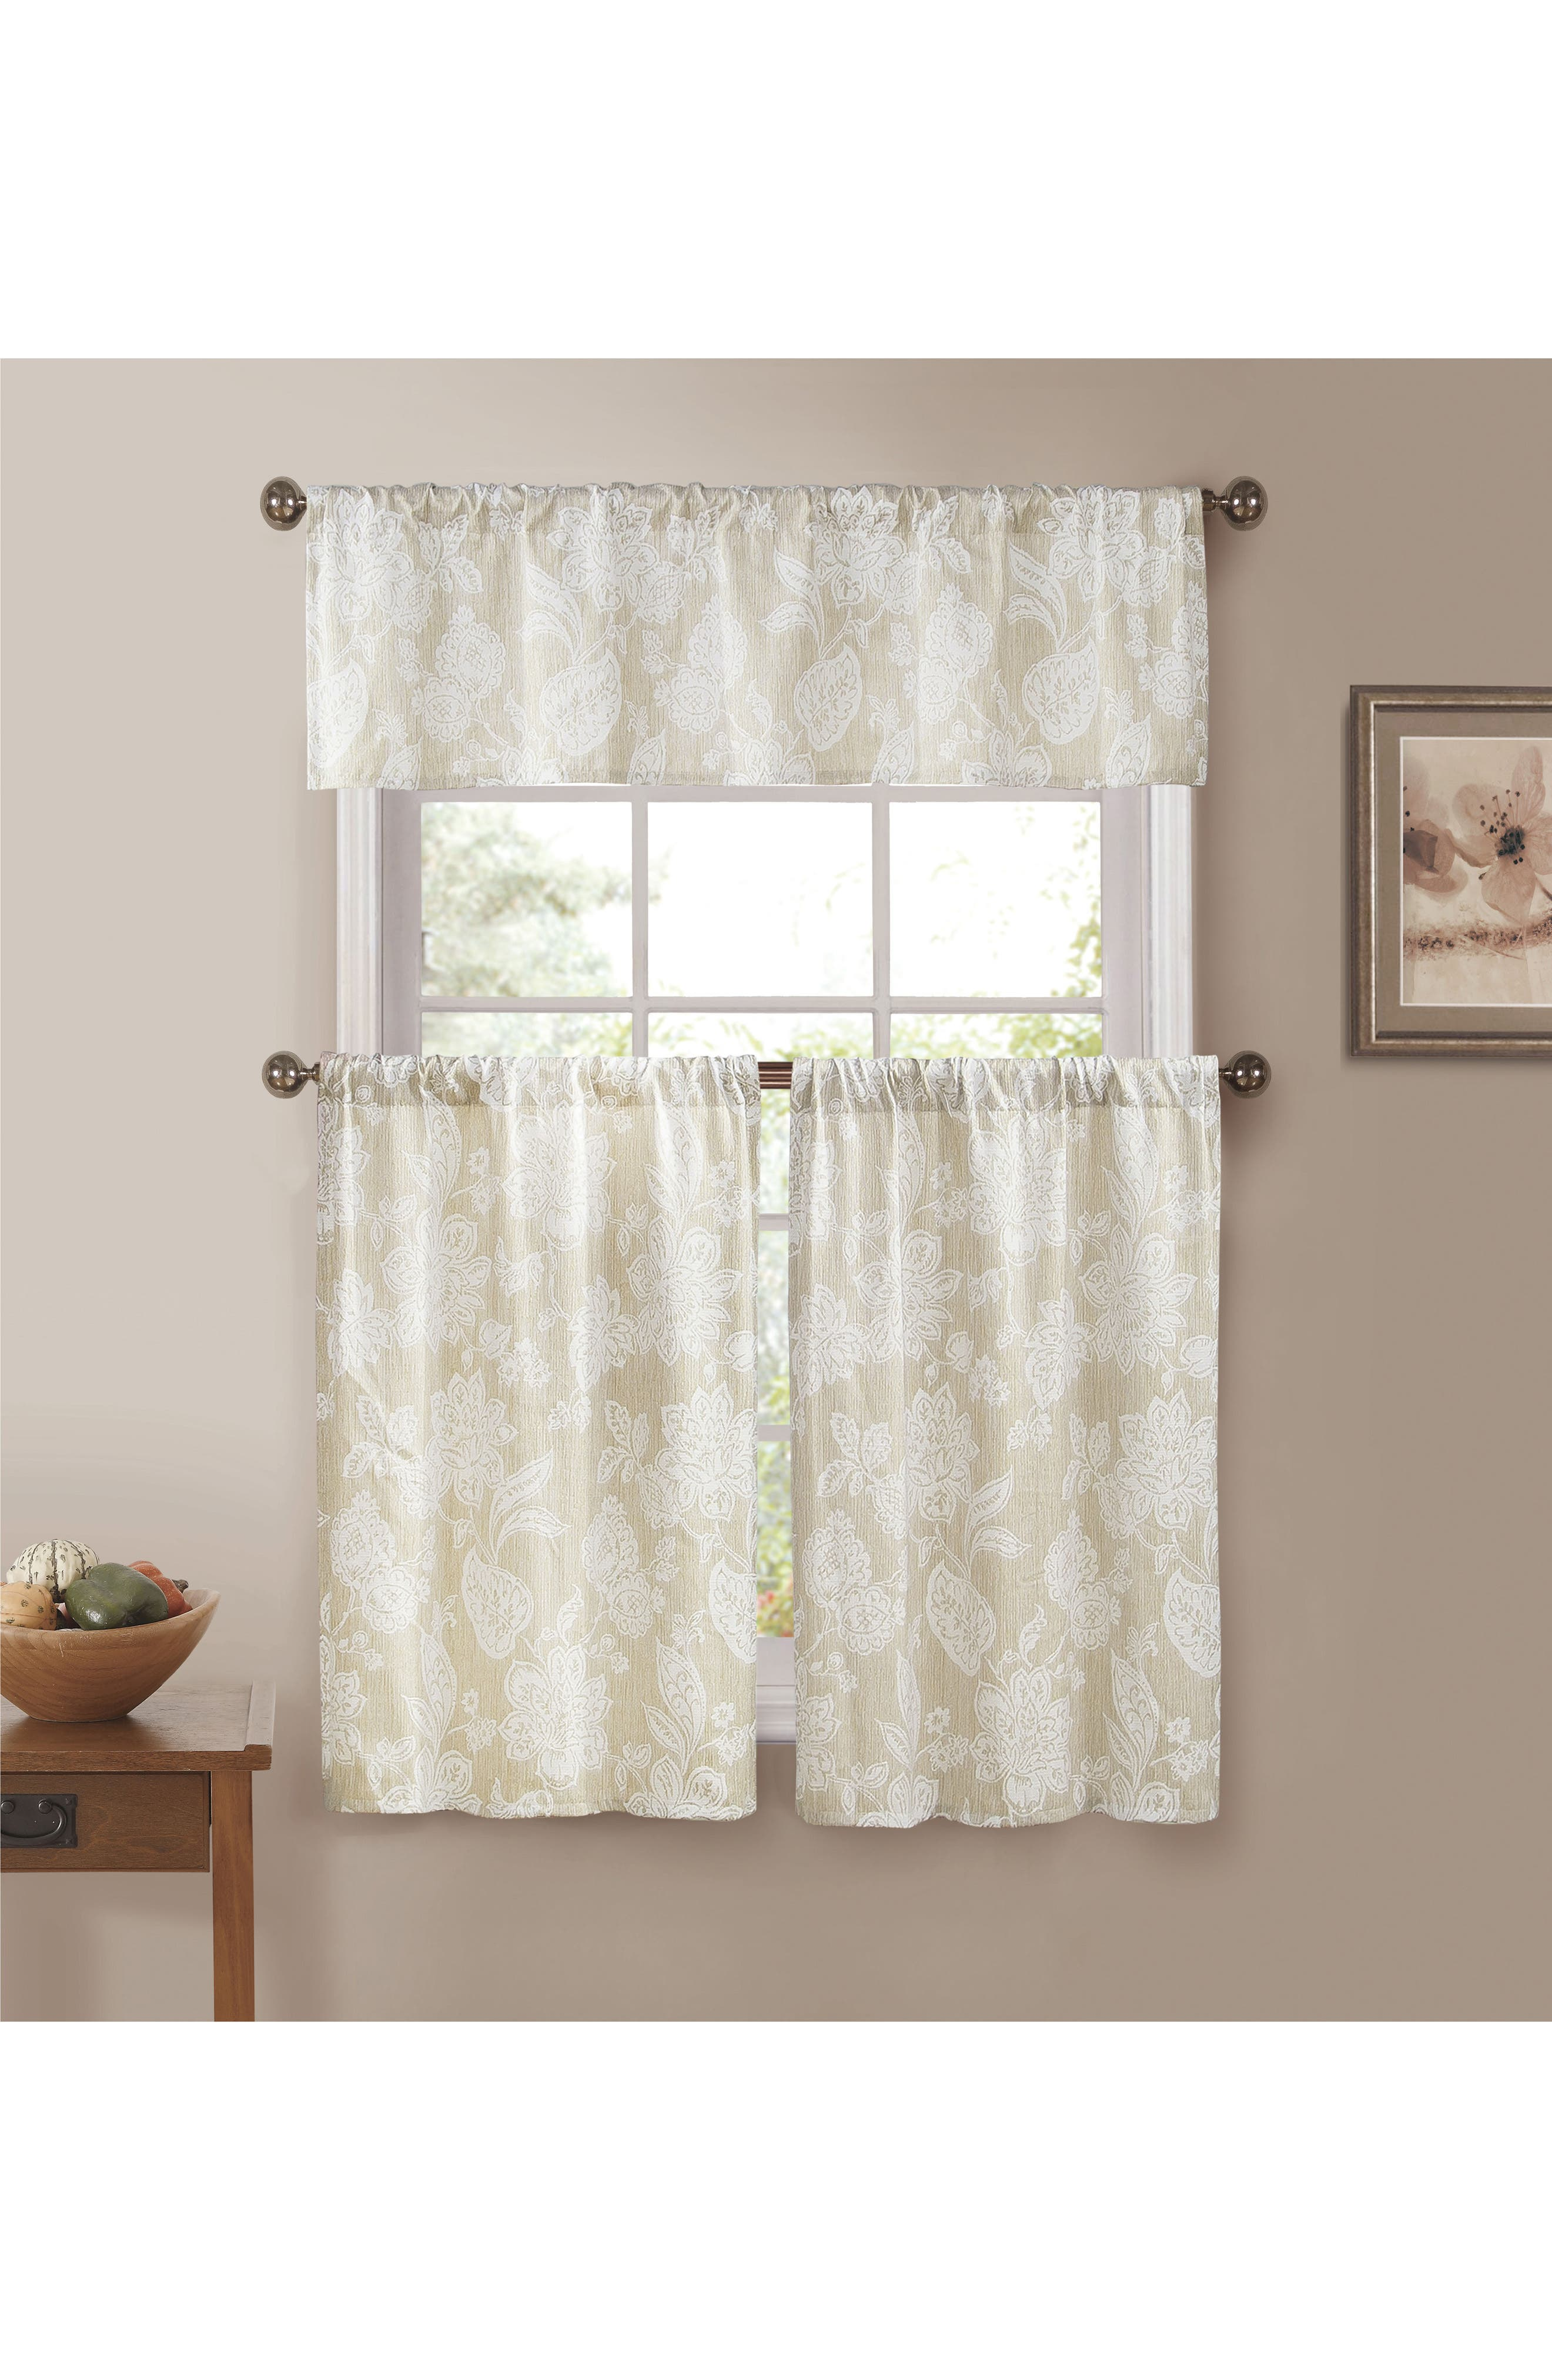 Ewva Set of 3 Tiered Jacquard Small Pole Top Window Panels,                         Main,                         color, 250